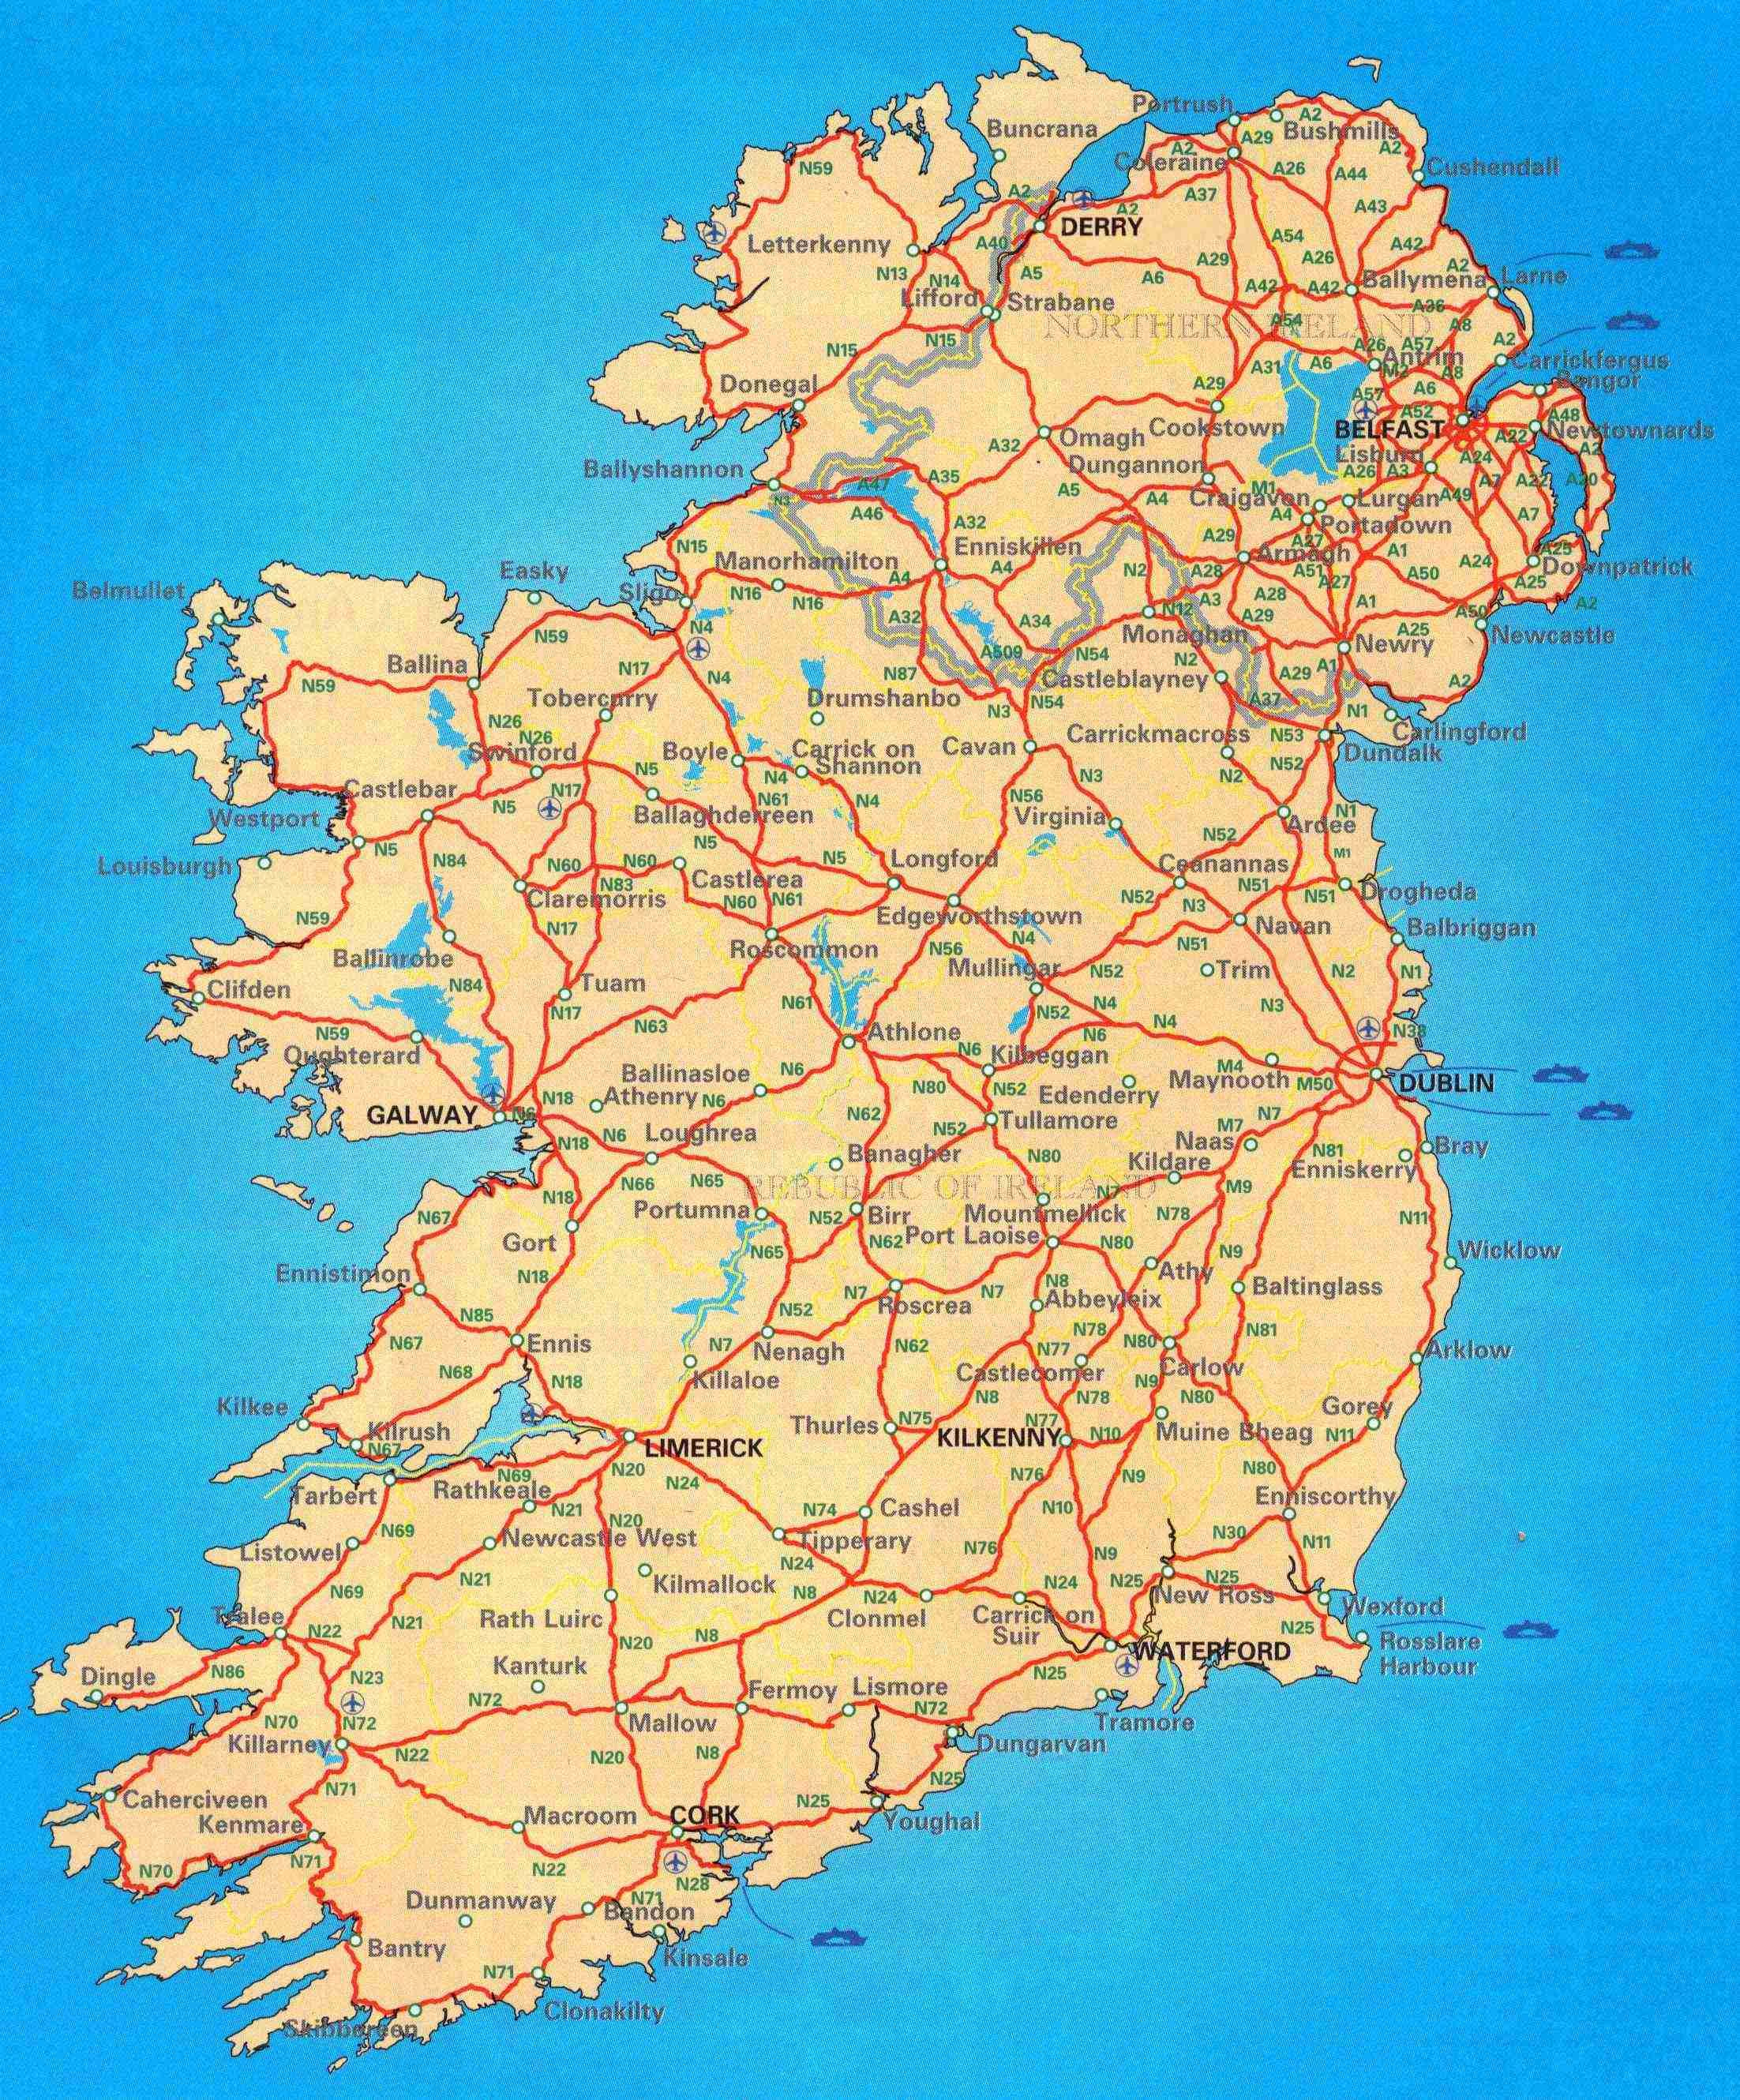 Small BIrishb Bmapb Ireland Pinterest Ireland - Cities map of ireland